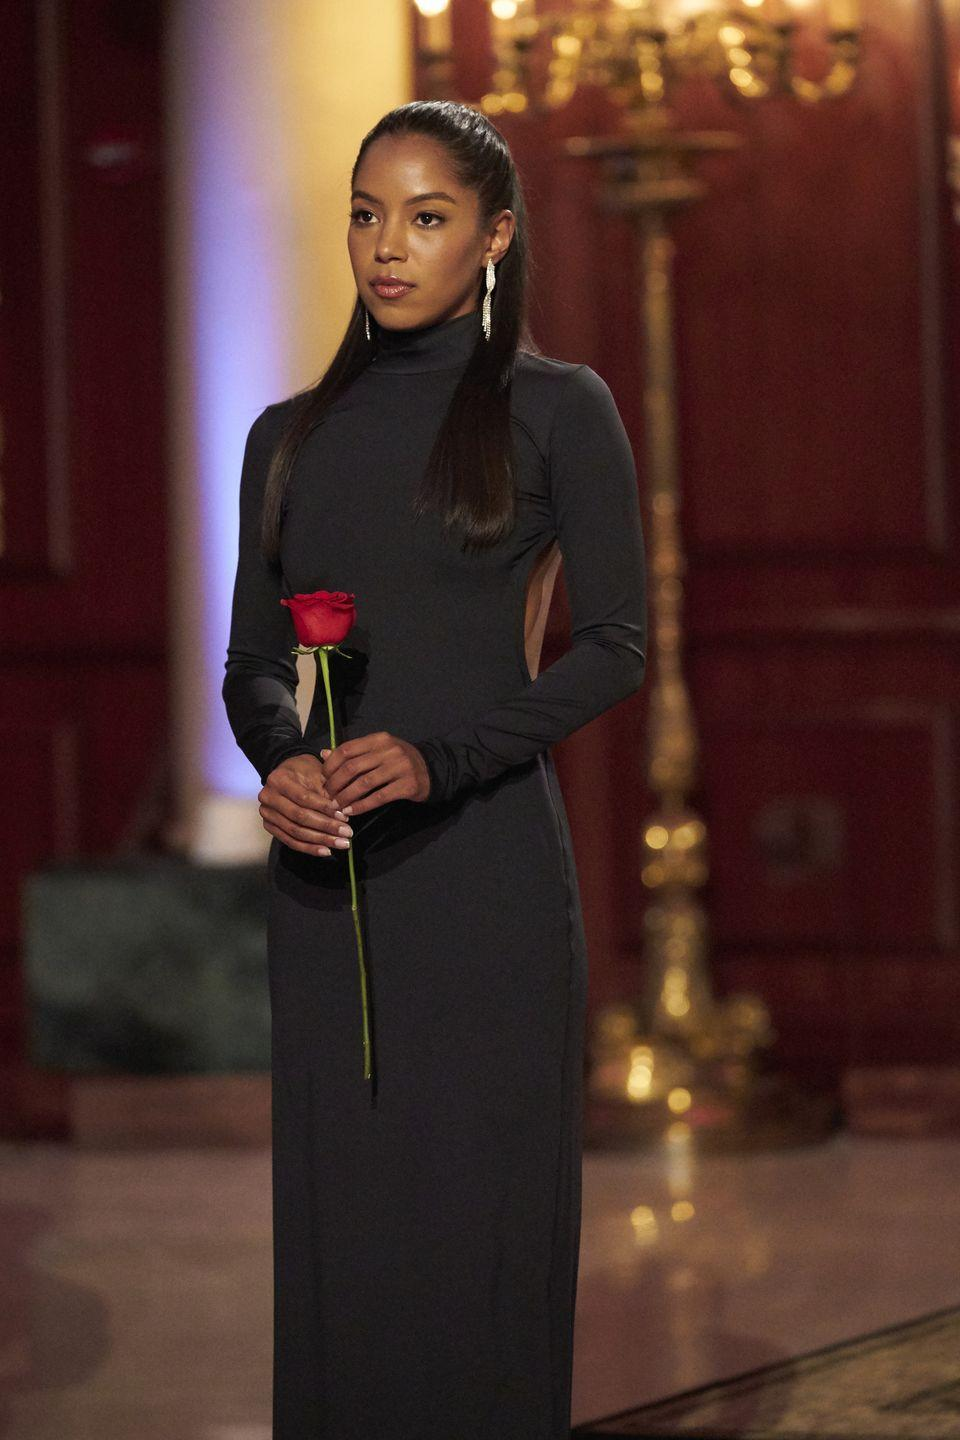 """<p>I'm just going to put this photo of Bri here as a form of manifestation. The eligibility rules state that a person <a href=""""https://bachelornation.com/pages/eligibility/"""" rel=""""nofollow noopener"""" target=""""_blank"""" data-ylk=""""slk:can't hold political office"""" class=""""link rapid-noclick-resp"""">can't hold political office</a> during and up to one year after filming.</p>"""